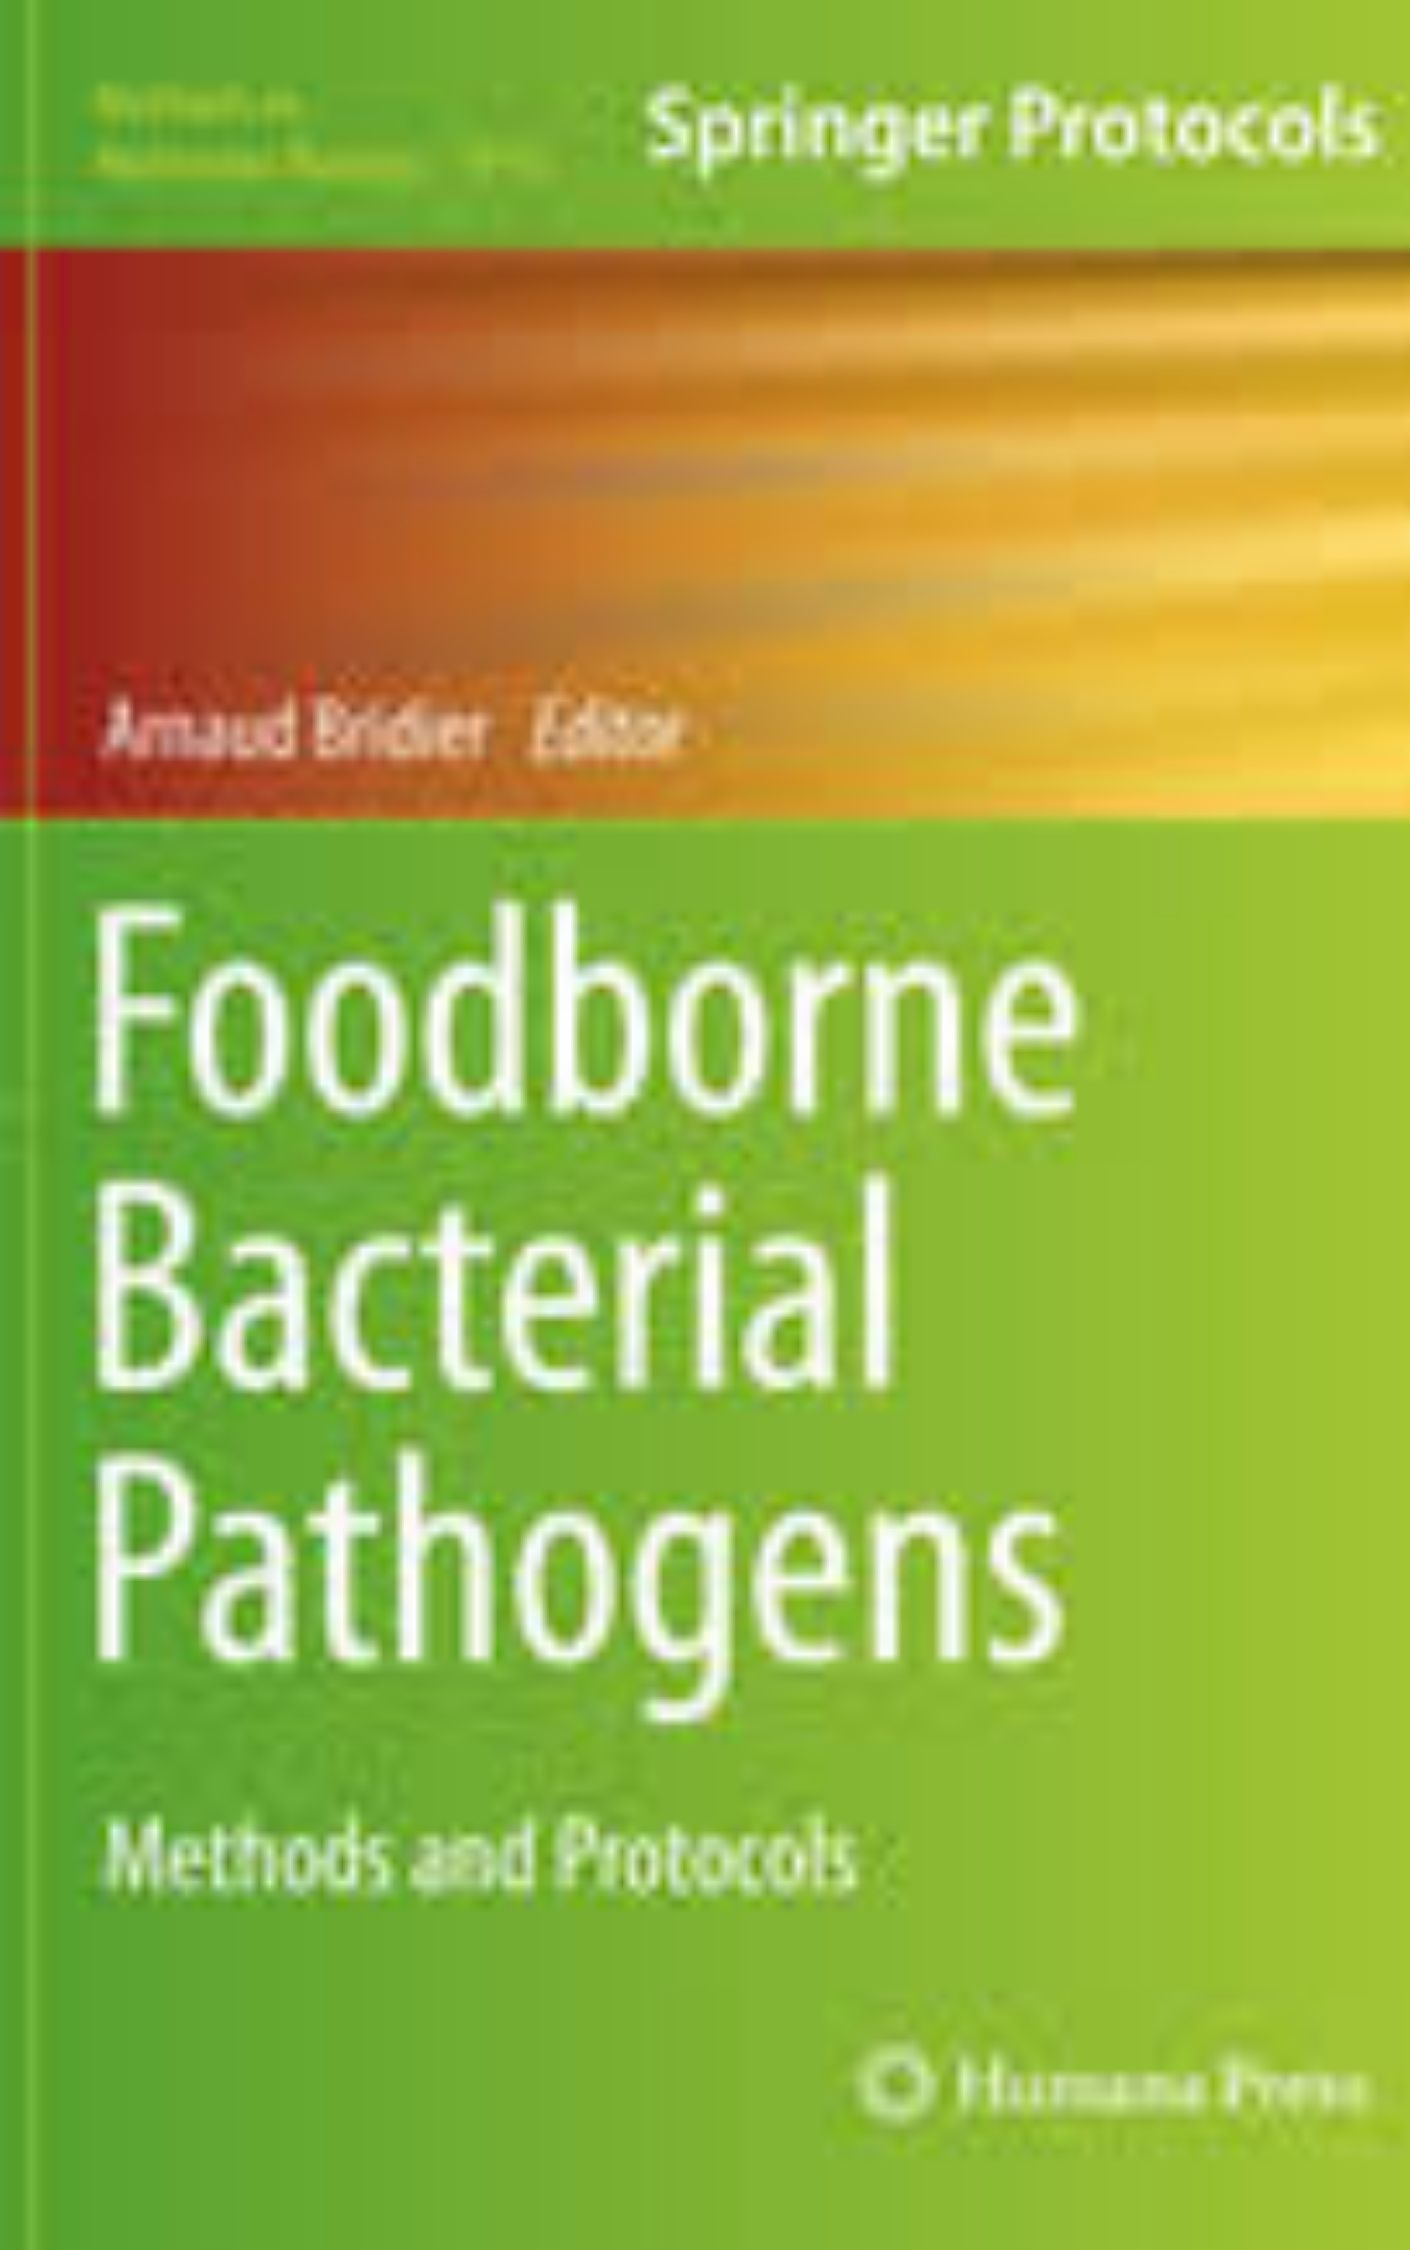 Foodborne Bacterial Pathogens Methods and Protocols by Arnaud Bridier